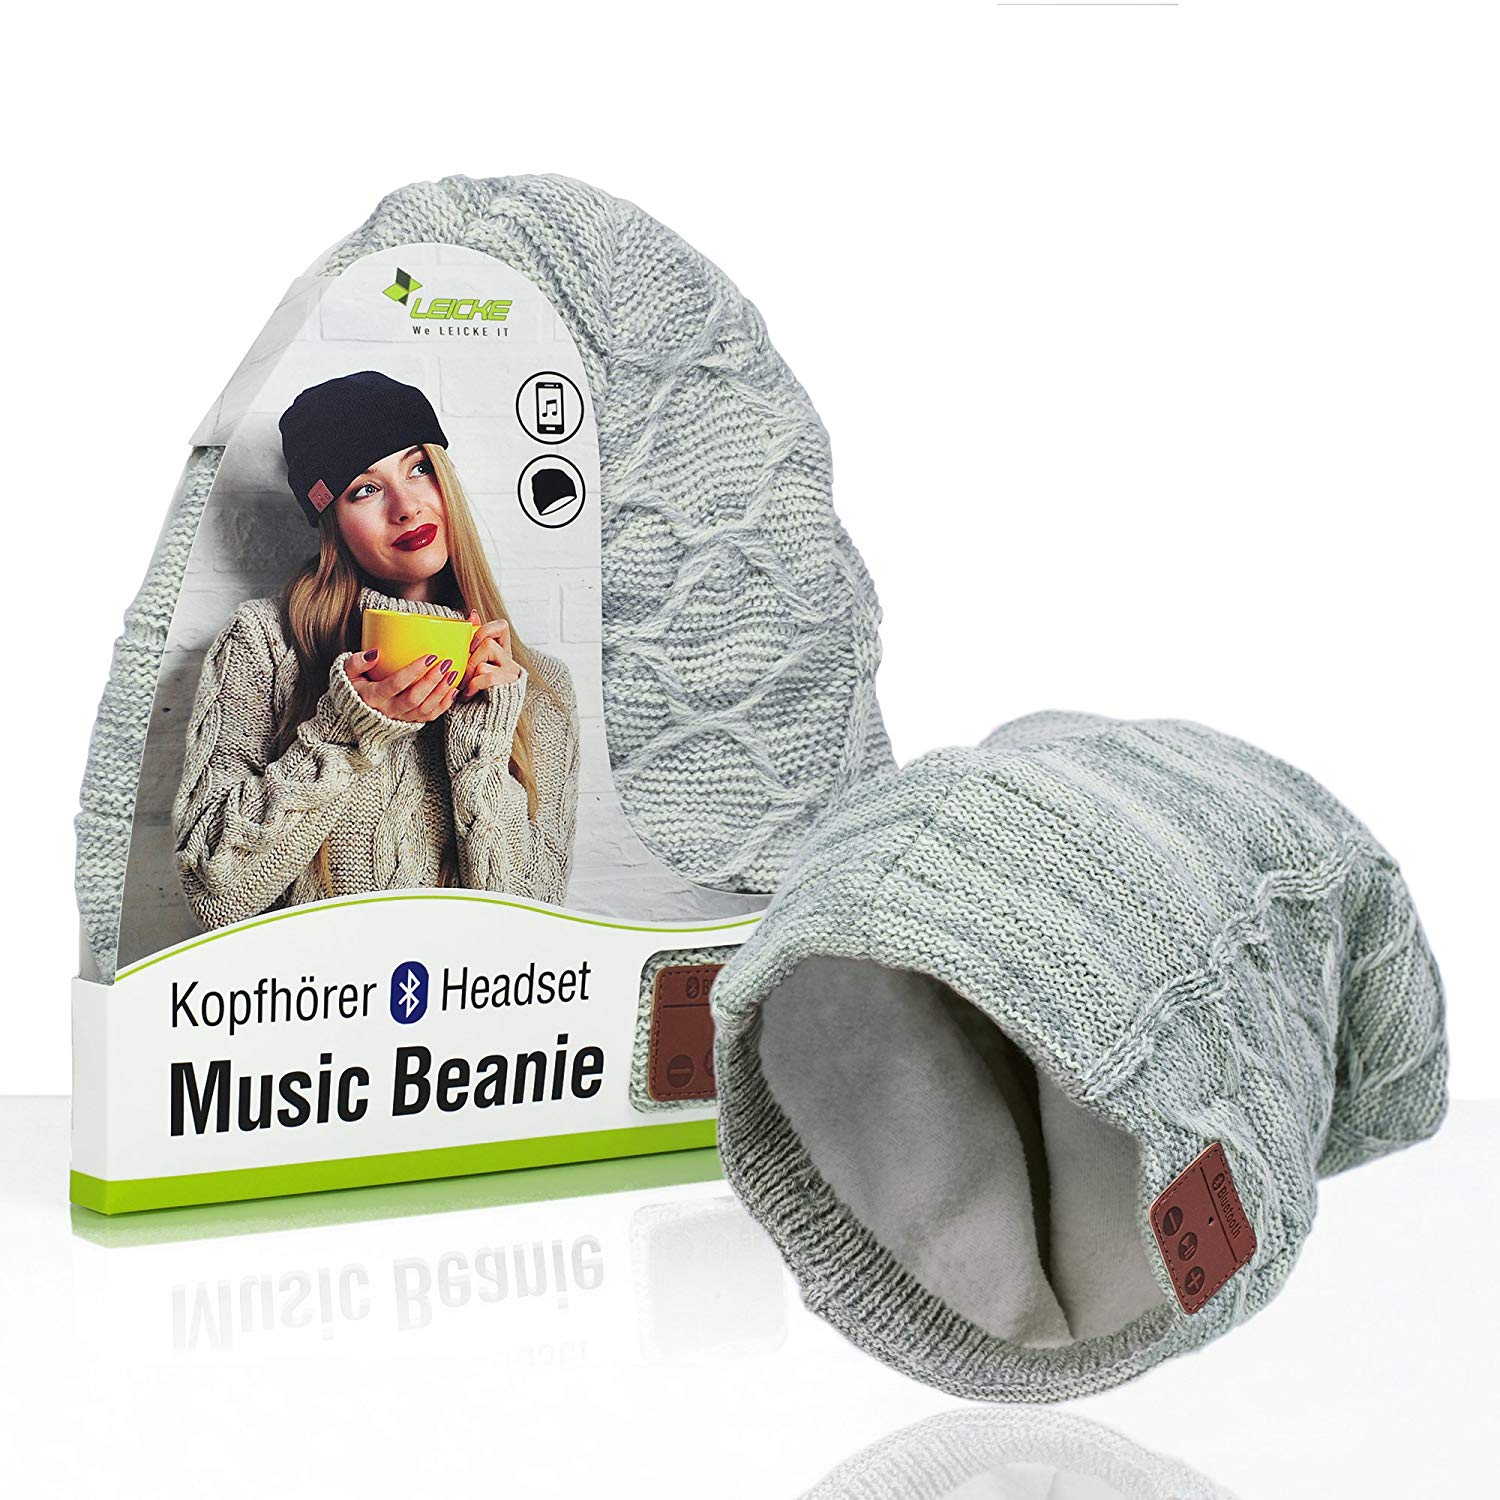 Music Beanie amazon